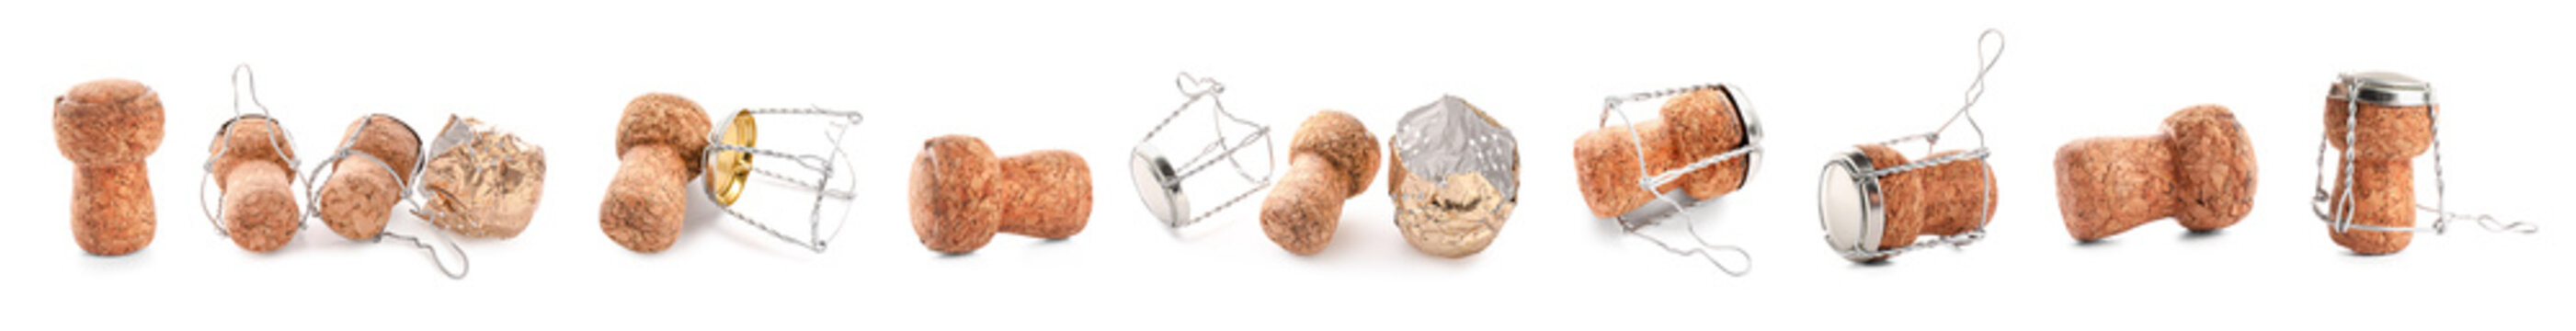 Many champagne corks on white background